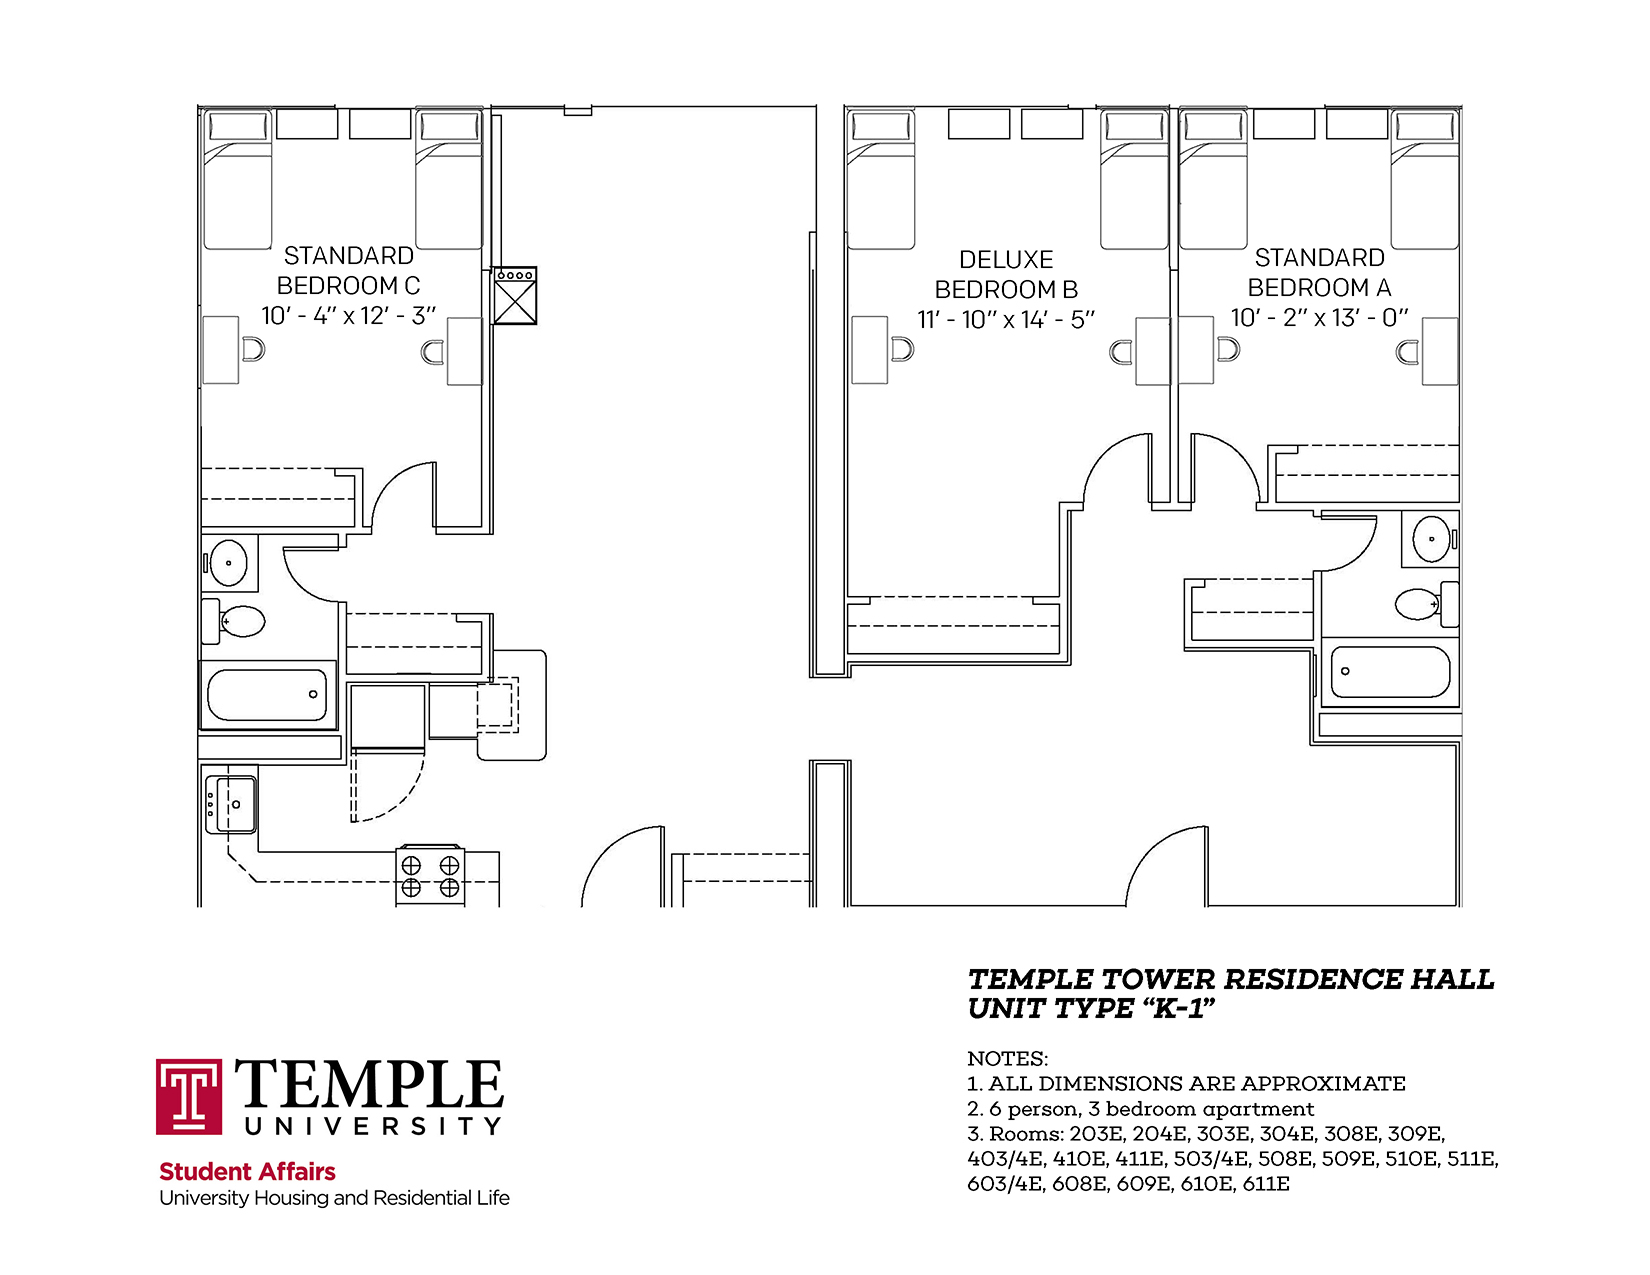 Temple Towers: Unit K1 - 6 person, 3 bedroom Apartment